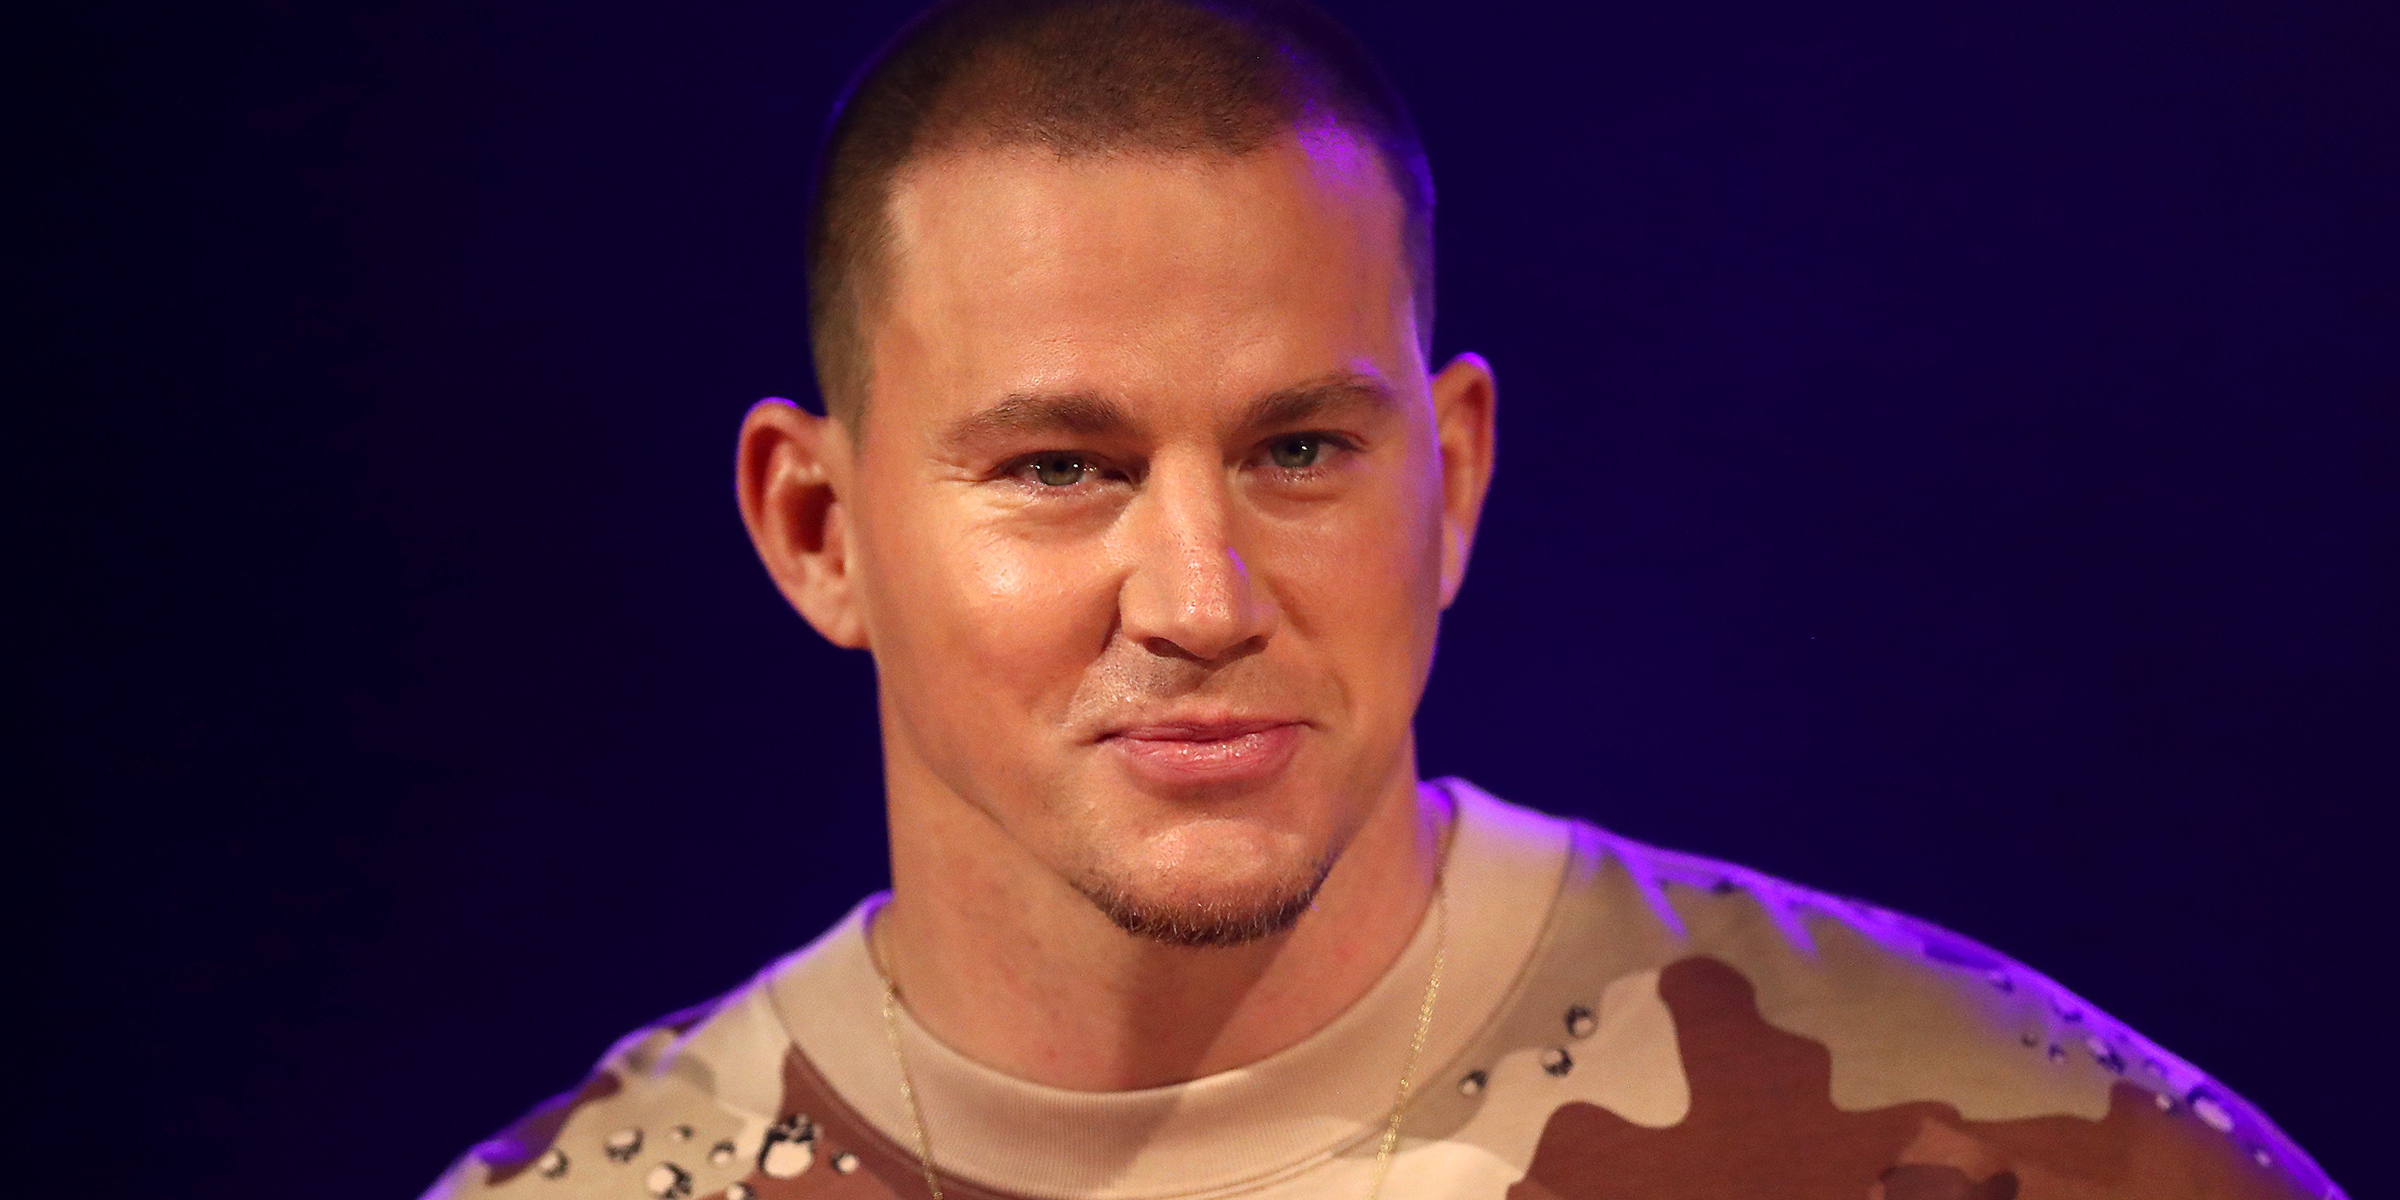 Channing Tatum's daughter boxes with her dad in rare video